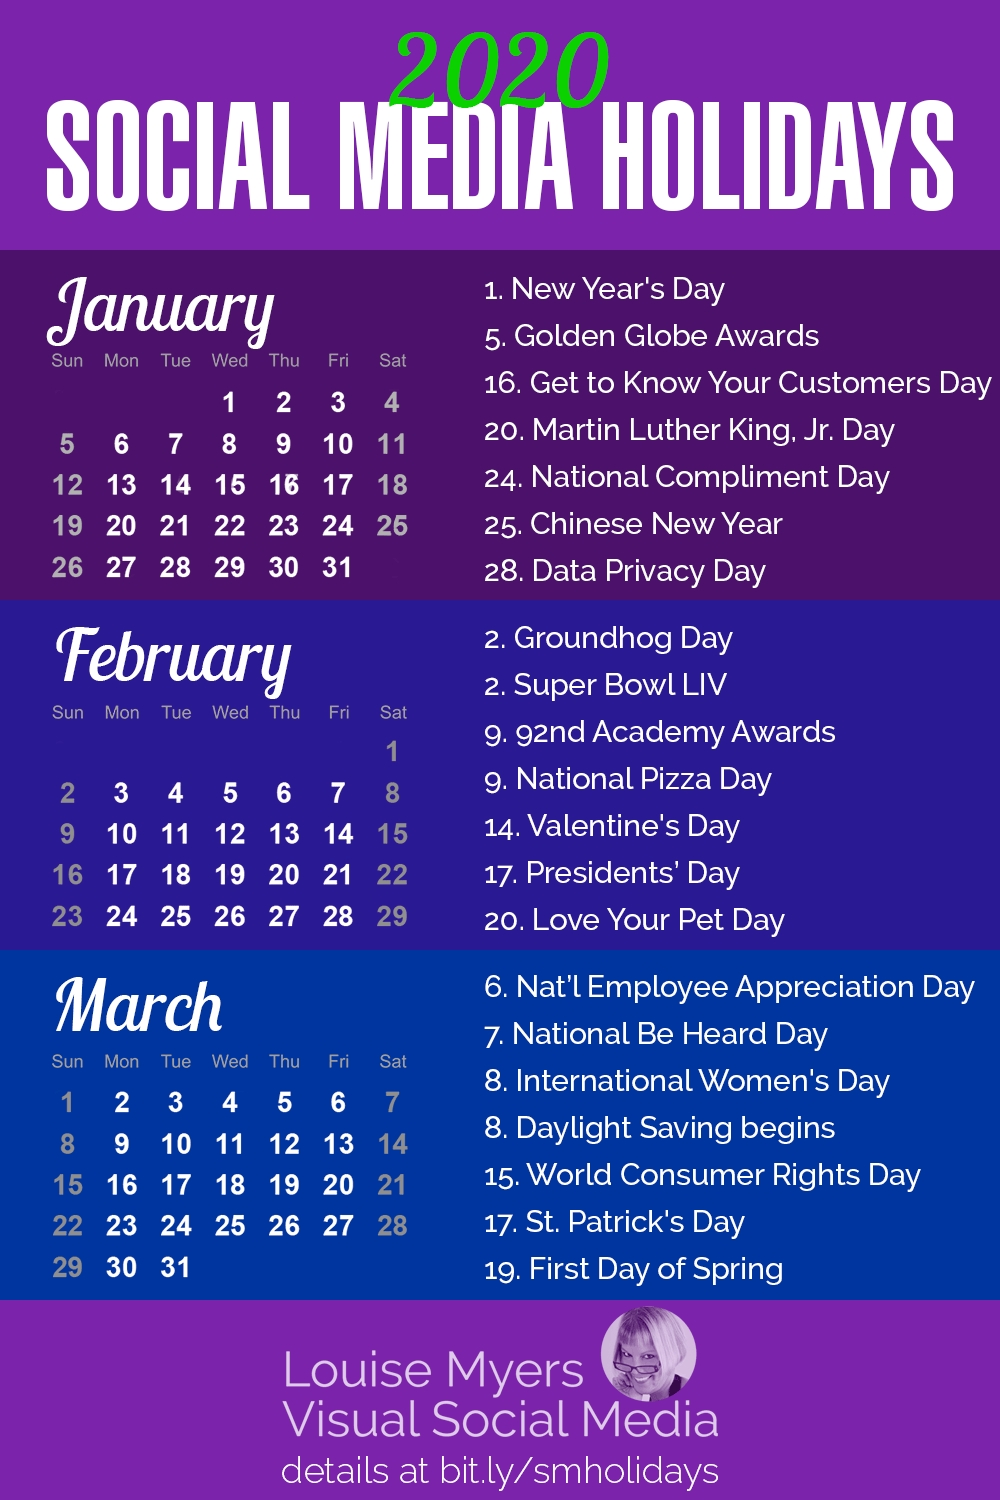 84 Social Media Holidays You Need In 2020: Indispensable! with regard to Year Of Special Days 2020